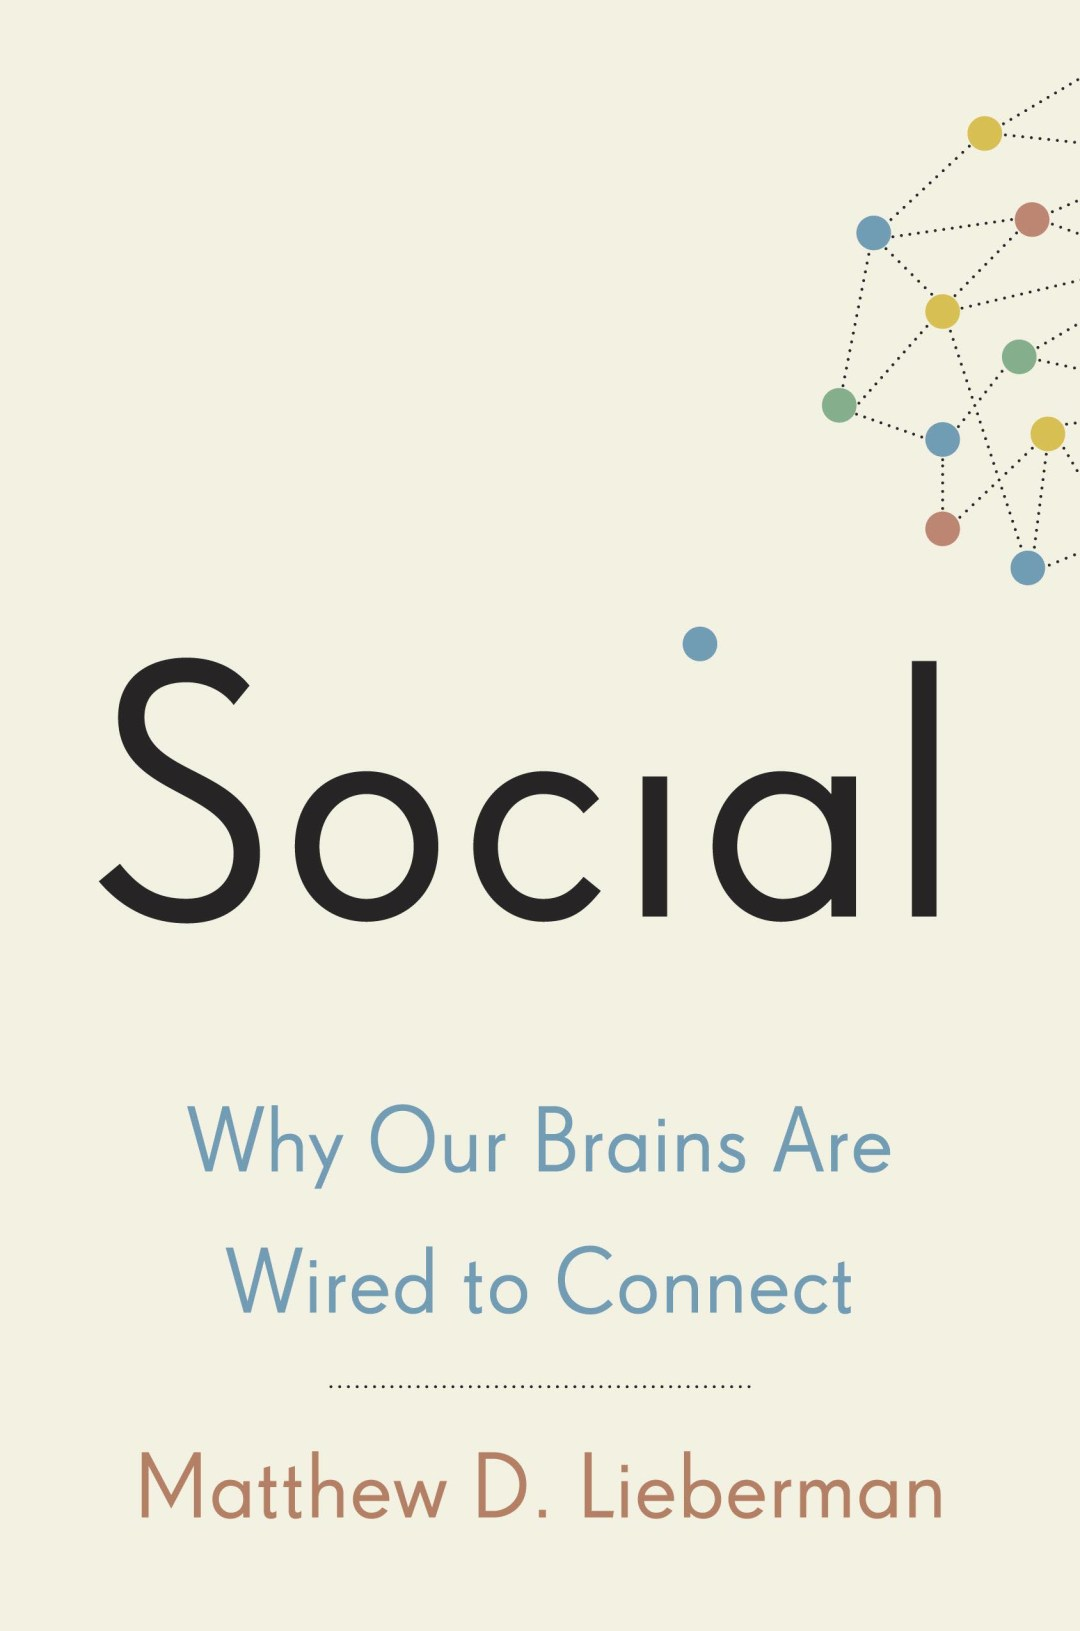 Social: Why Our Brains Are Wired To Connect by Matthew D. Lieberman